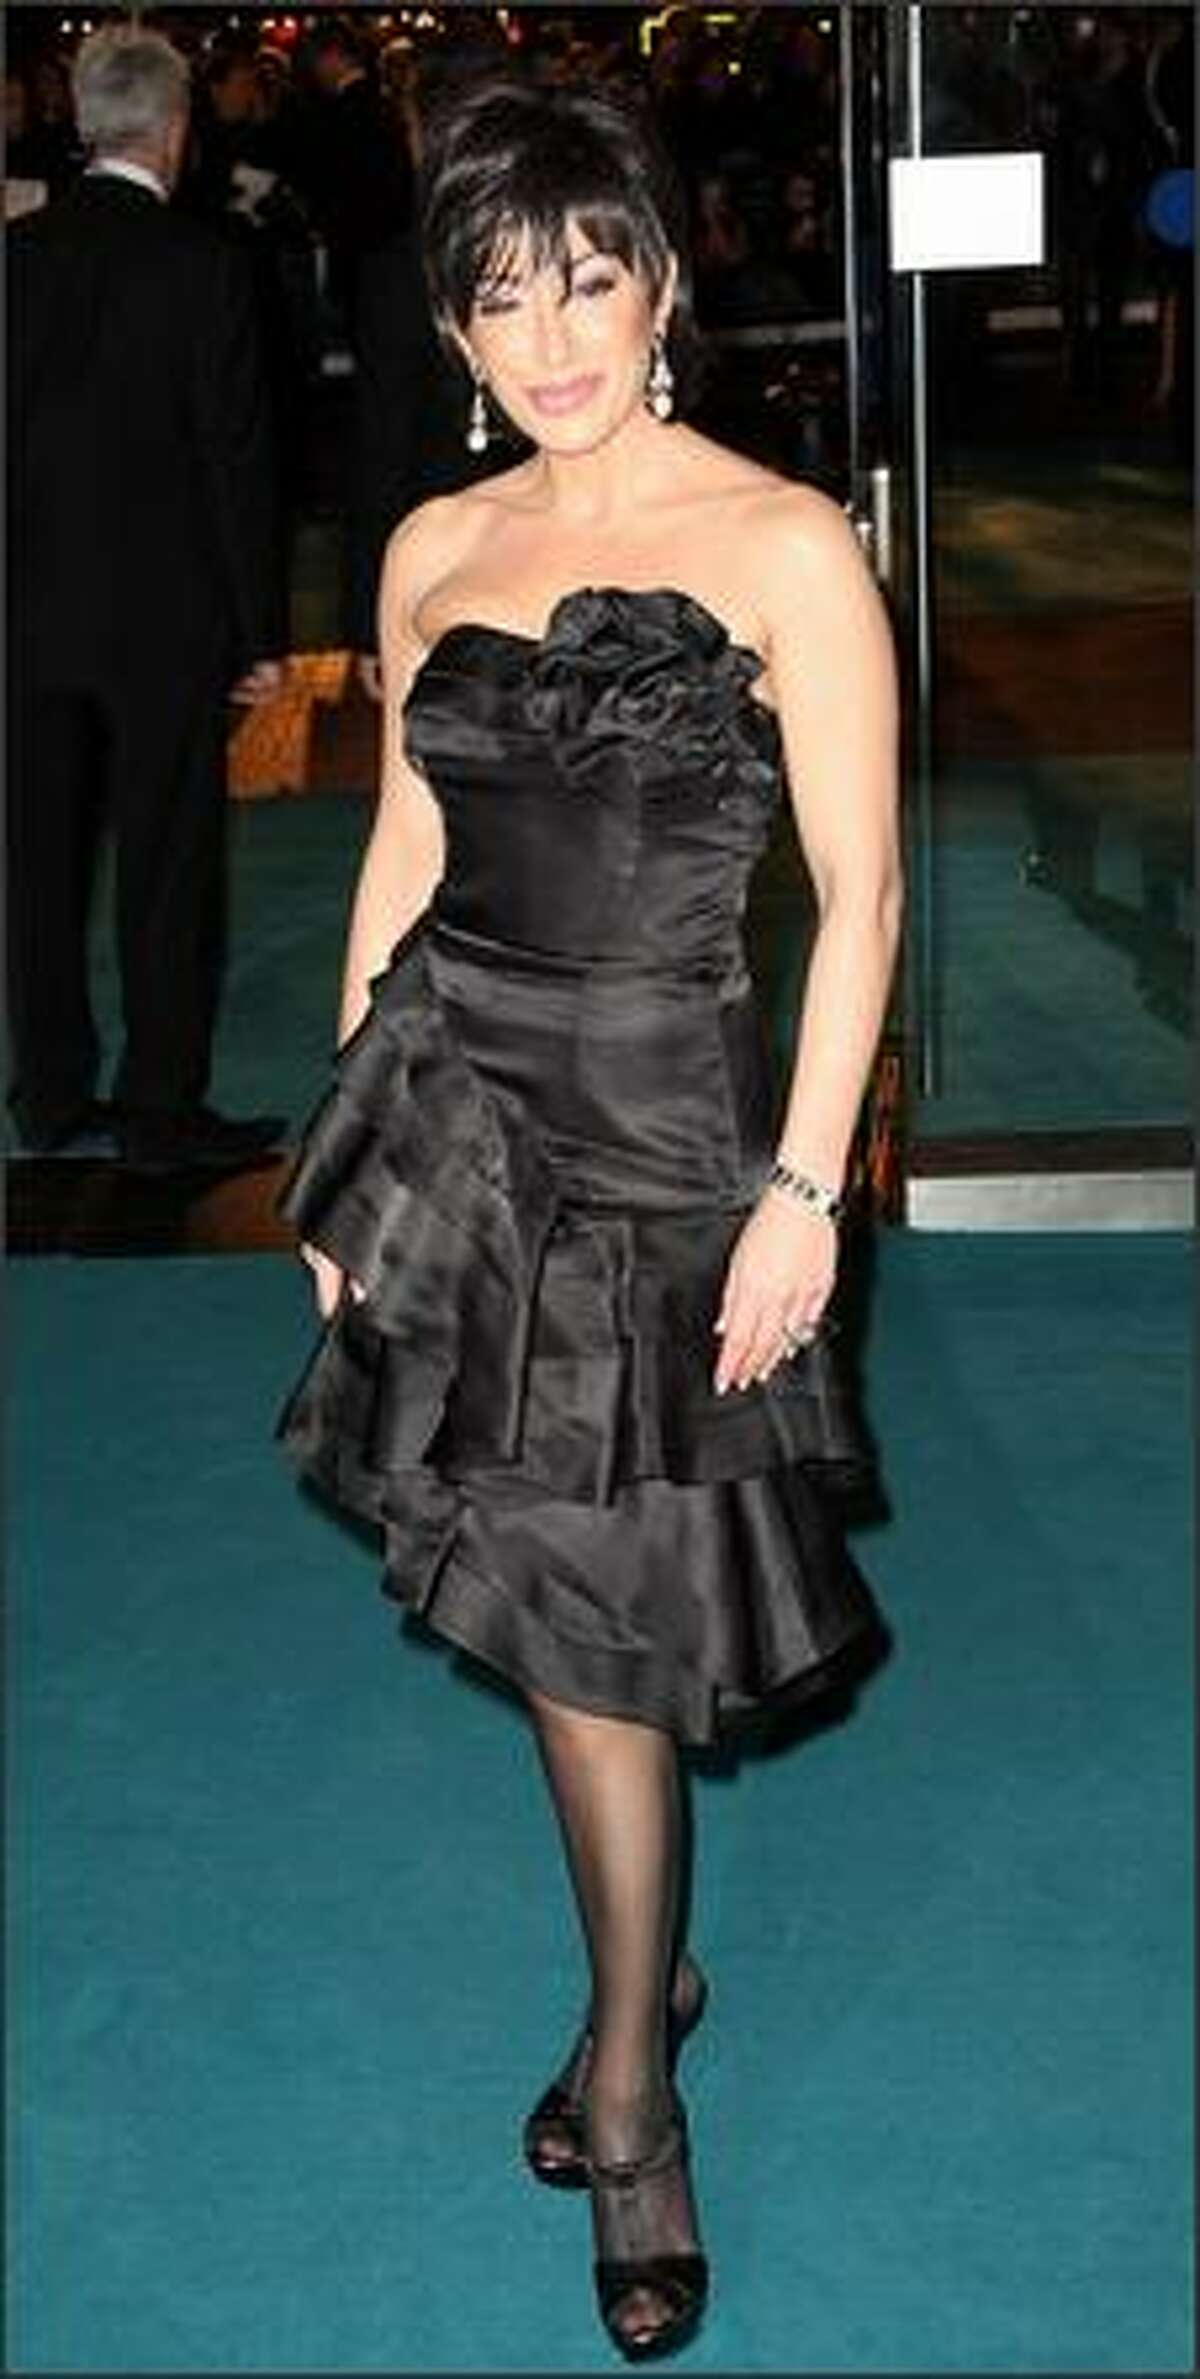 Nancy Dell'Olio arrives at the Royal Film premiere of